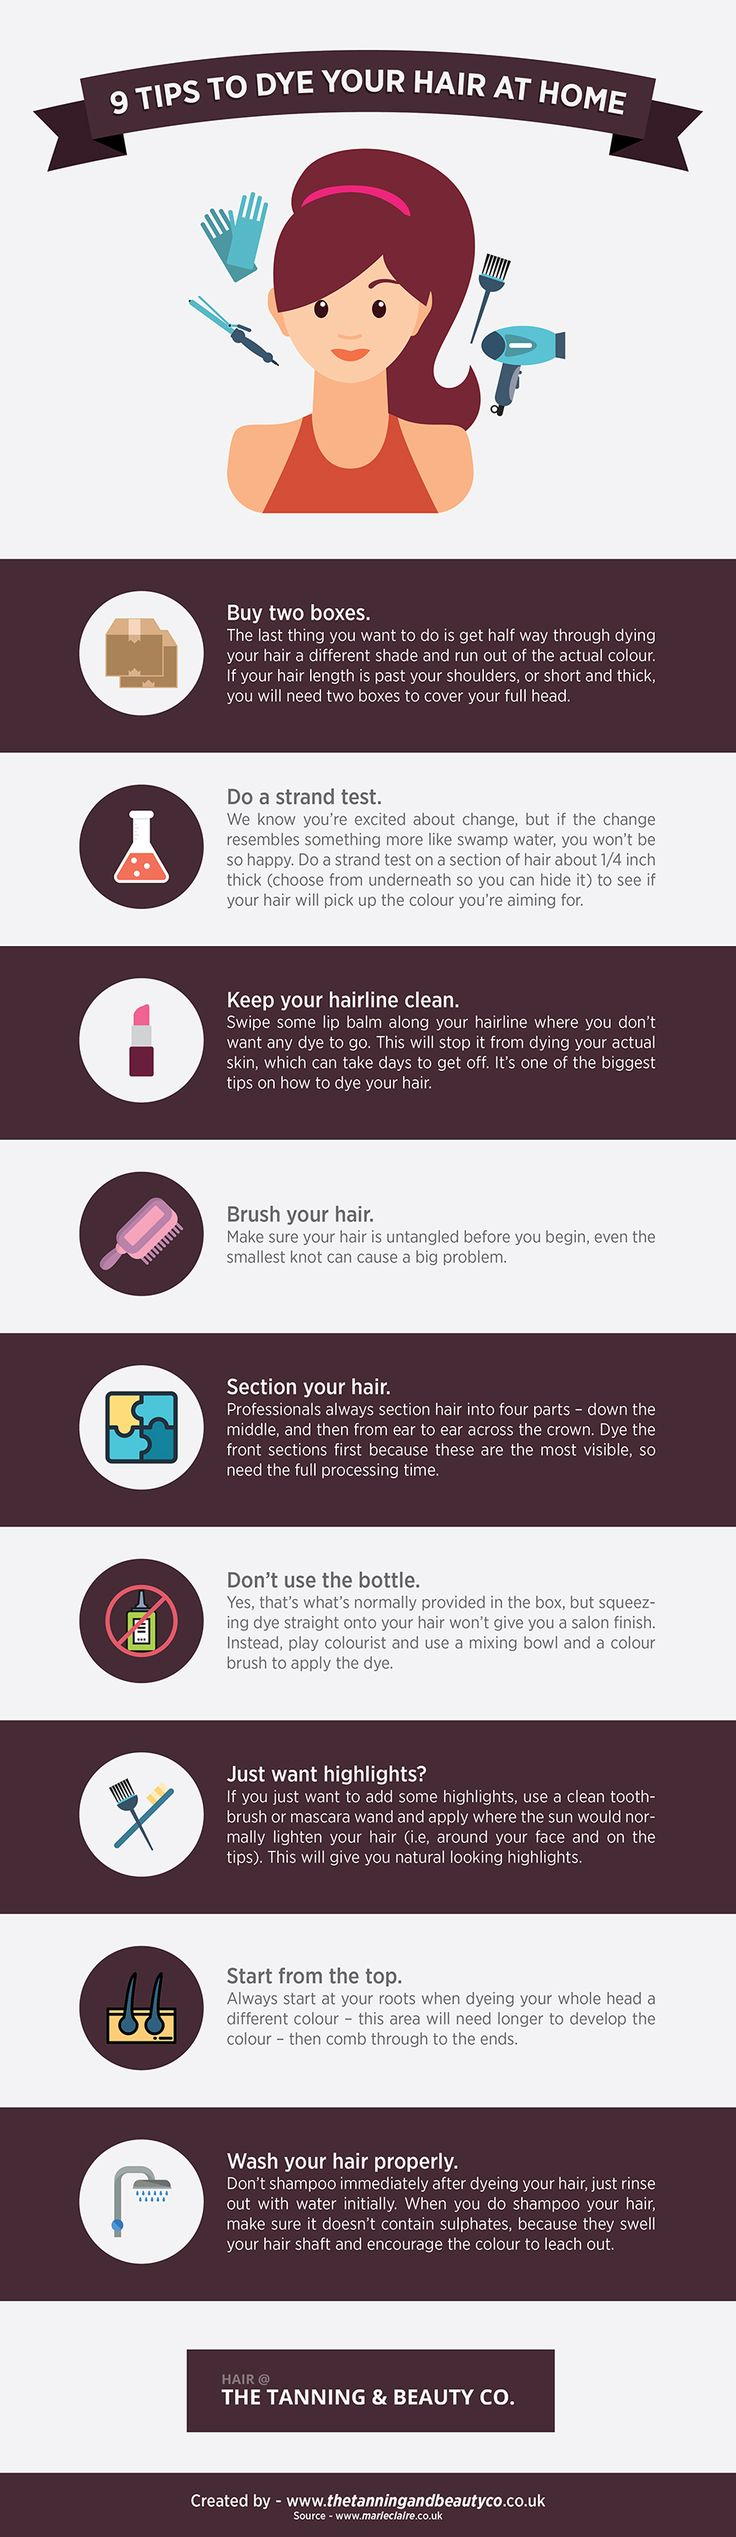 http://www.thetanningandbeautyco.co.uk/hair-dye-infographic/4593746197  In this infographic we share some tips for DIY hair dying at home.